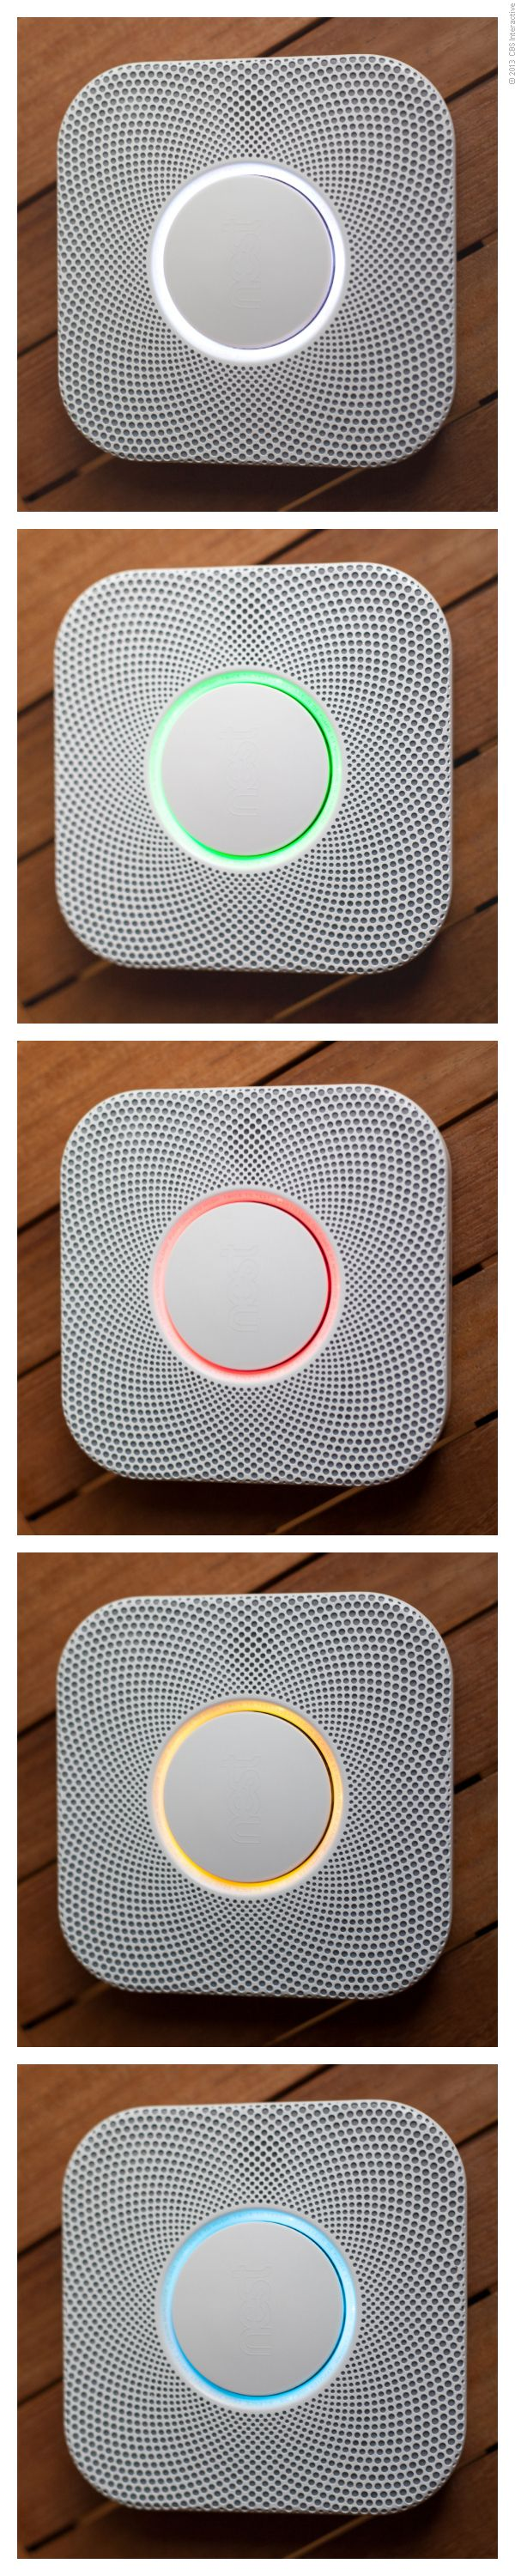 Nest Protect (wi-fi smoke detector & carbon monoxide monitor)